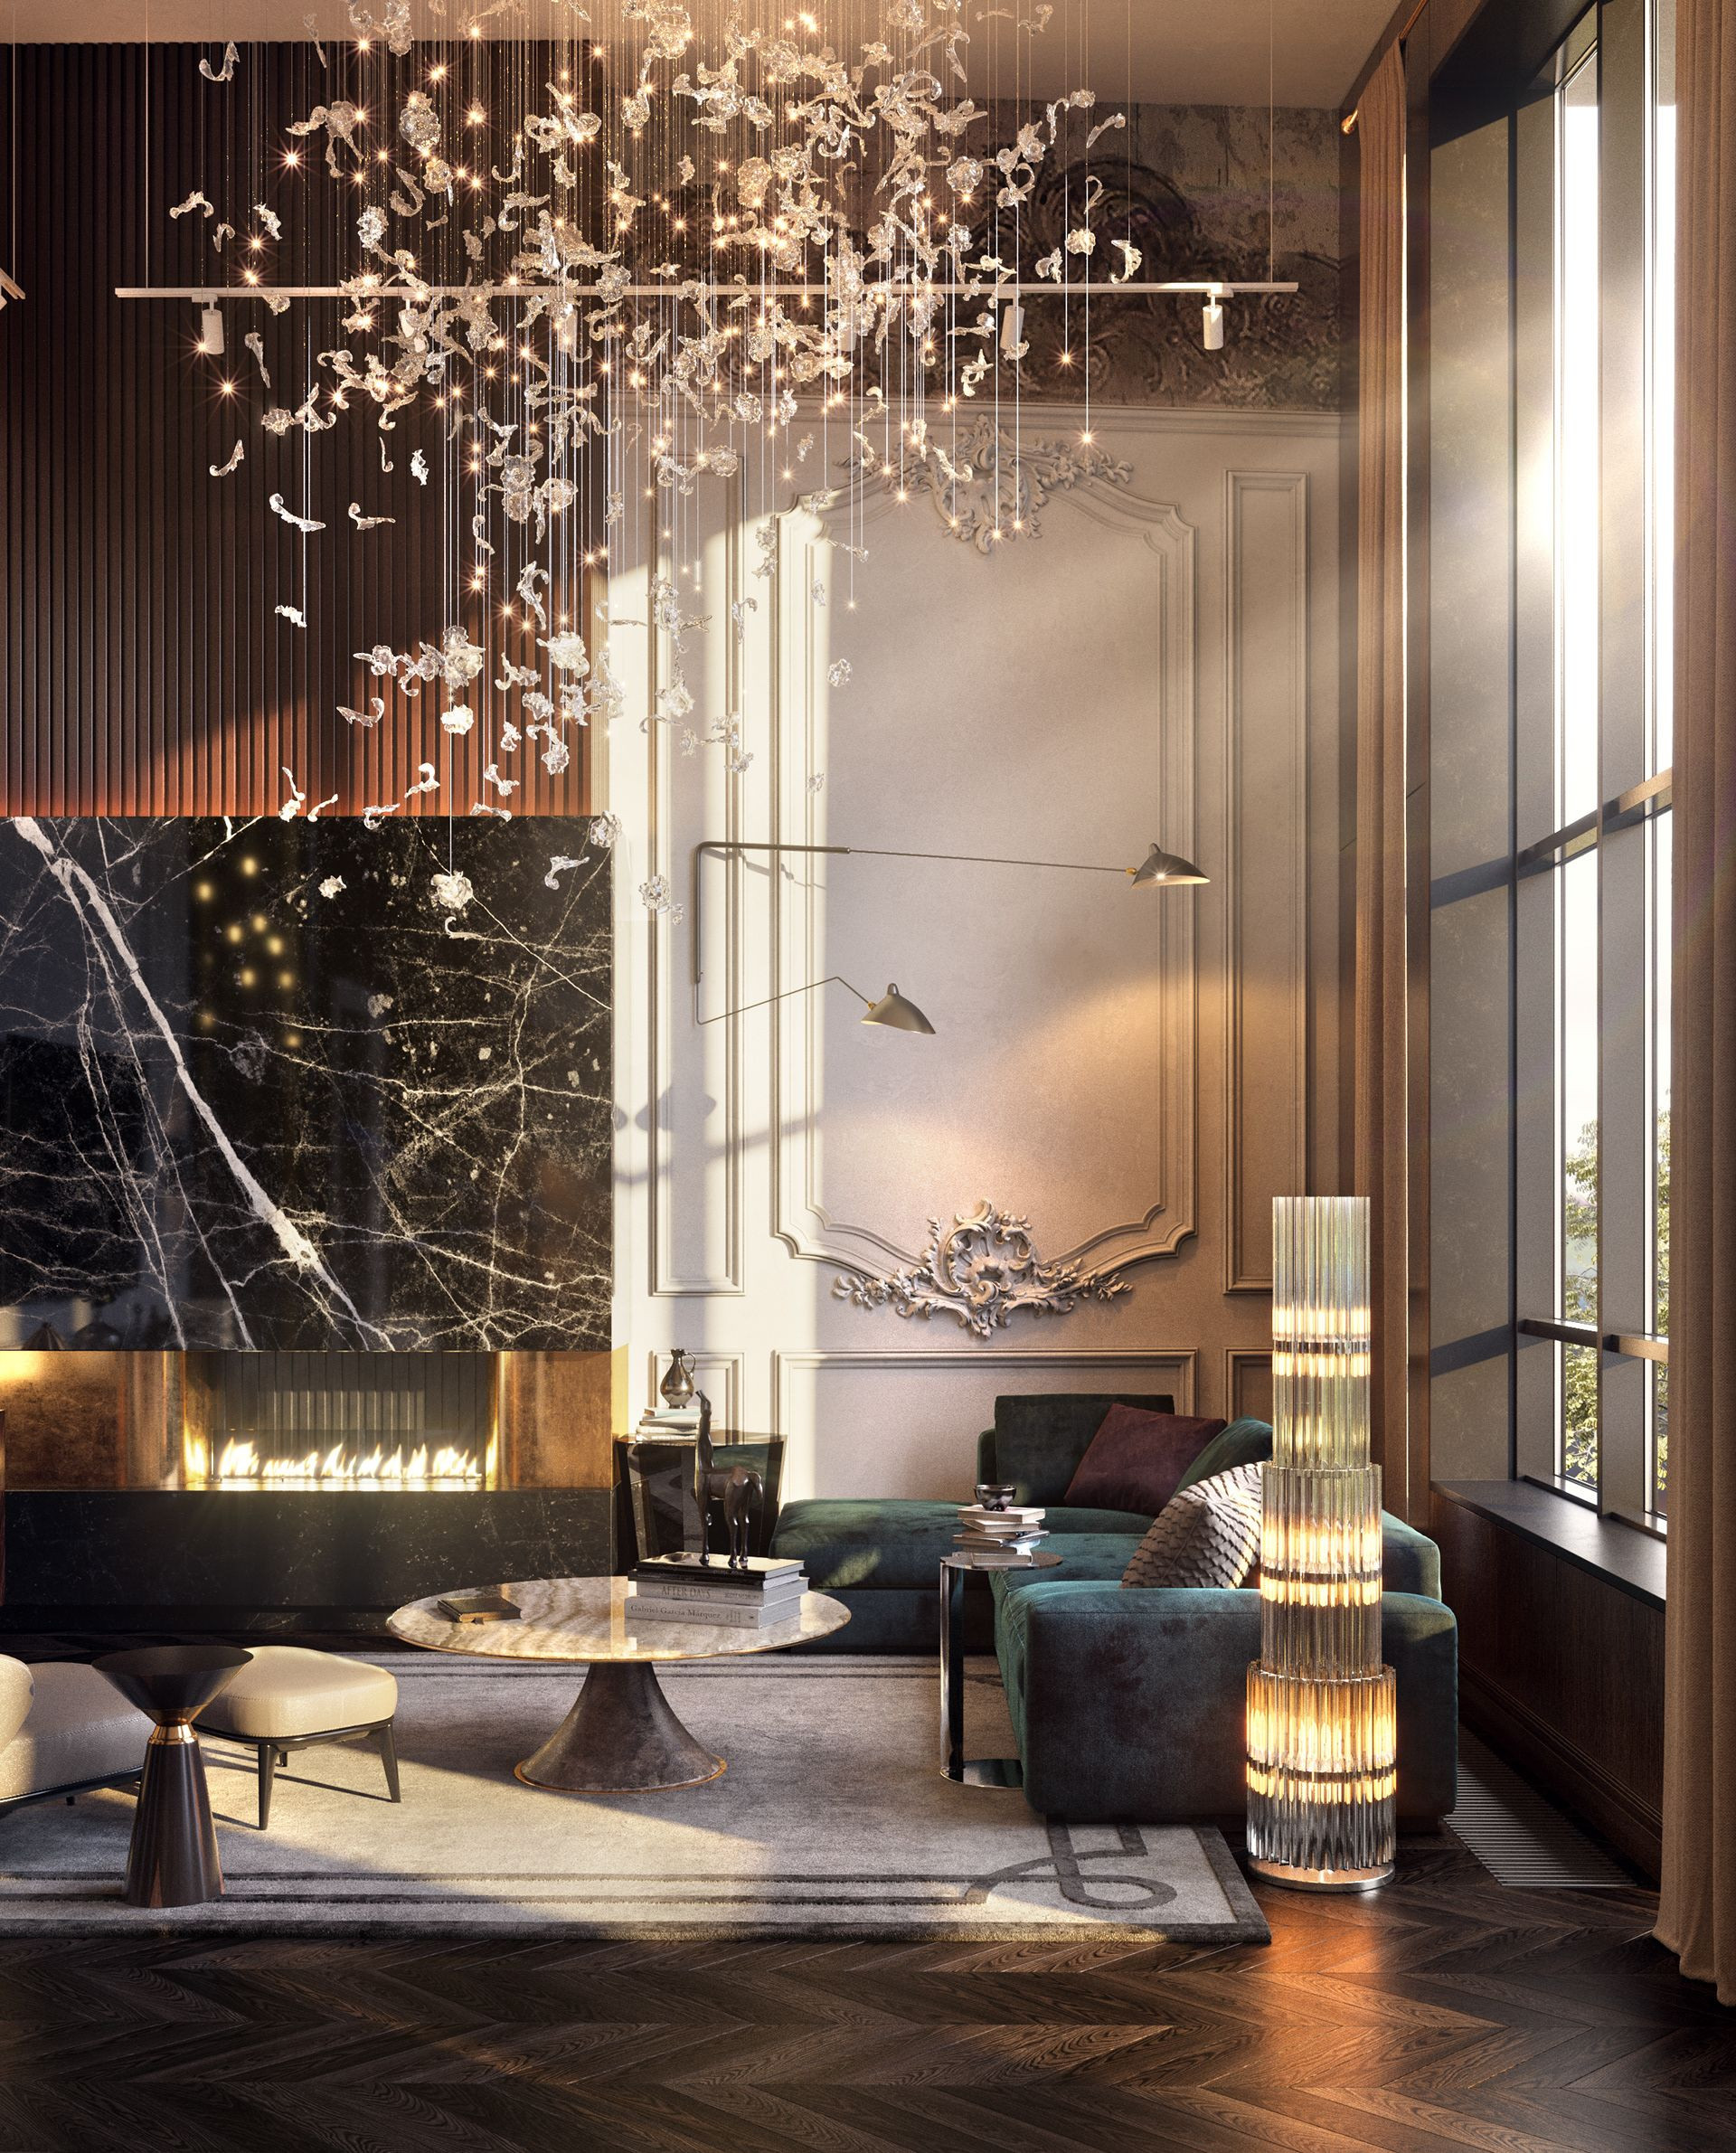 New Home Designs Latest Luxury Homes Interior Decoration: 3D-ANIMATION OF NEOCLASSIC INTERIOR On Behance